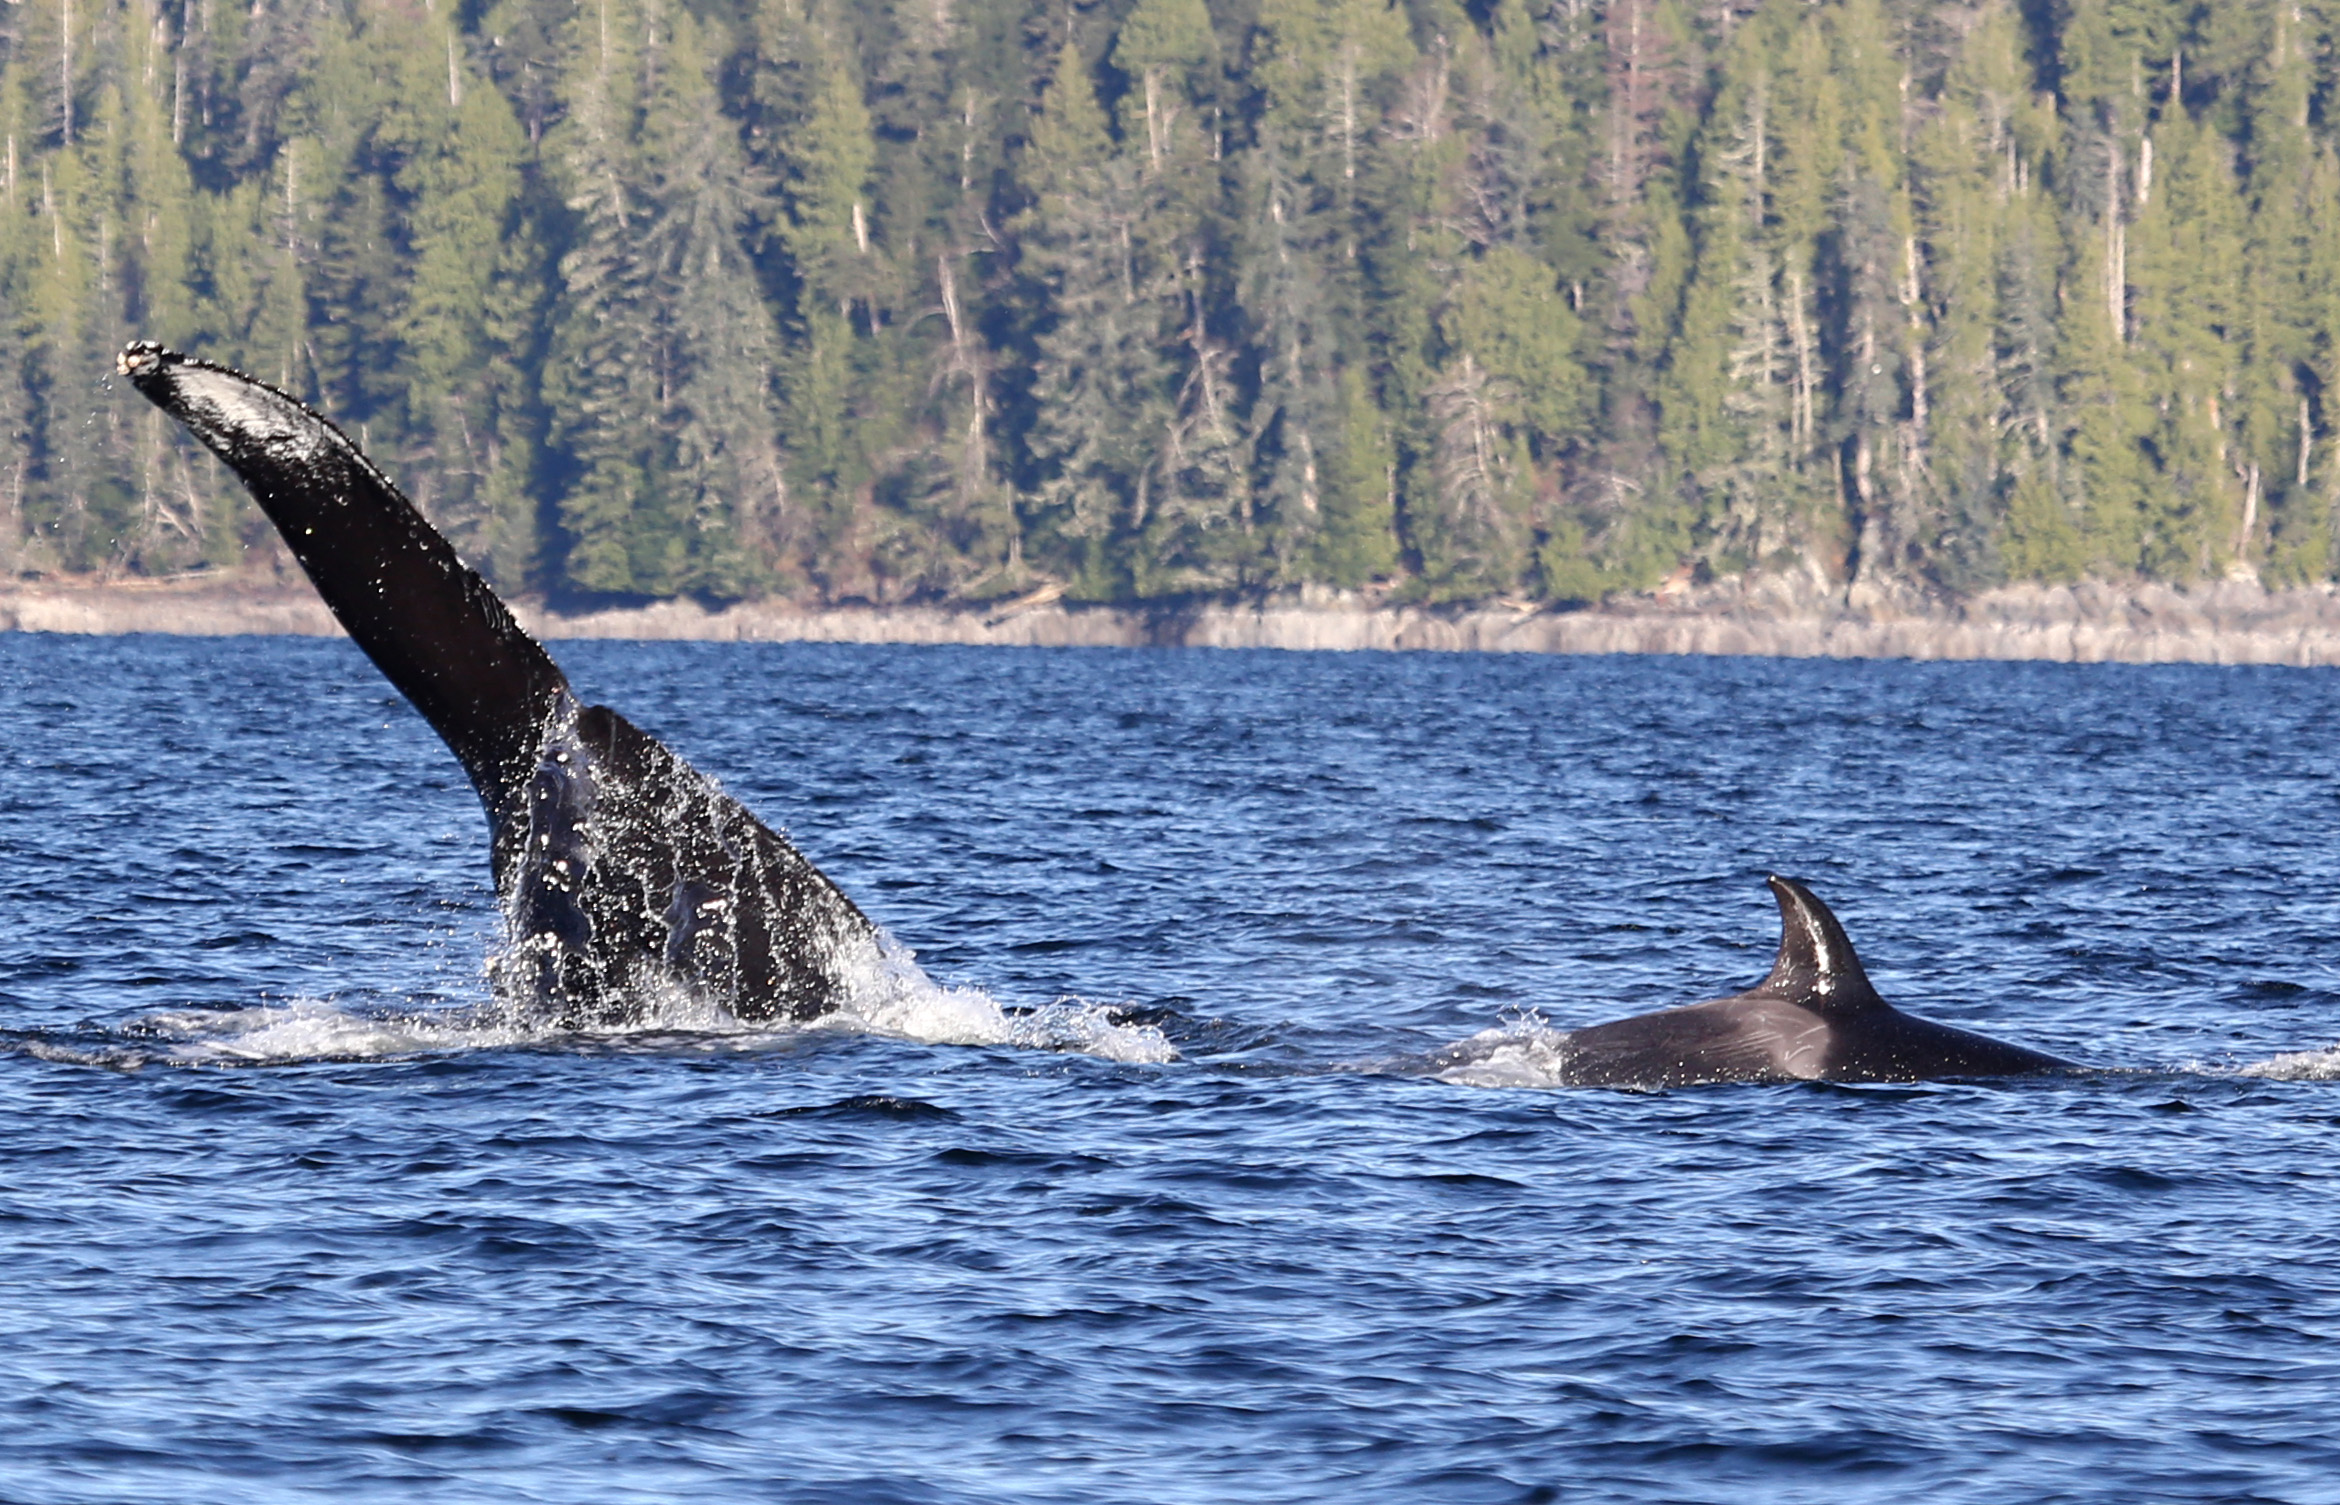 The humpback whale and orca. Photo: © Janie Wray